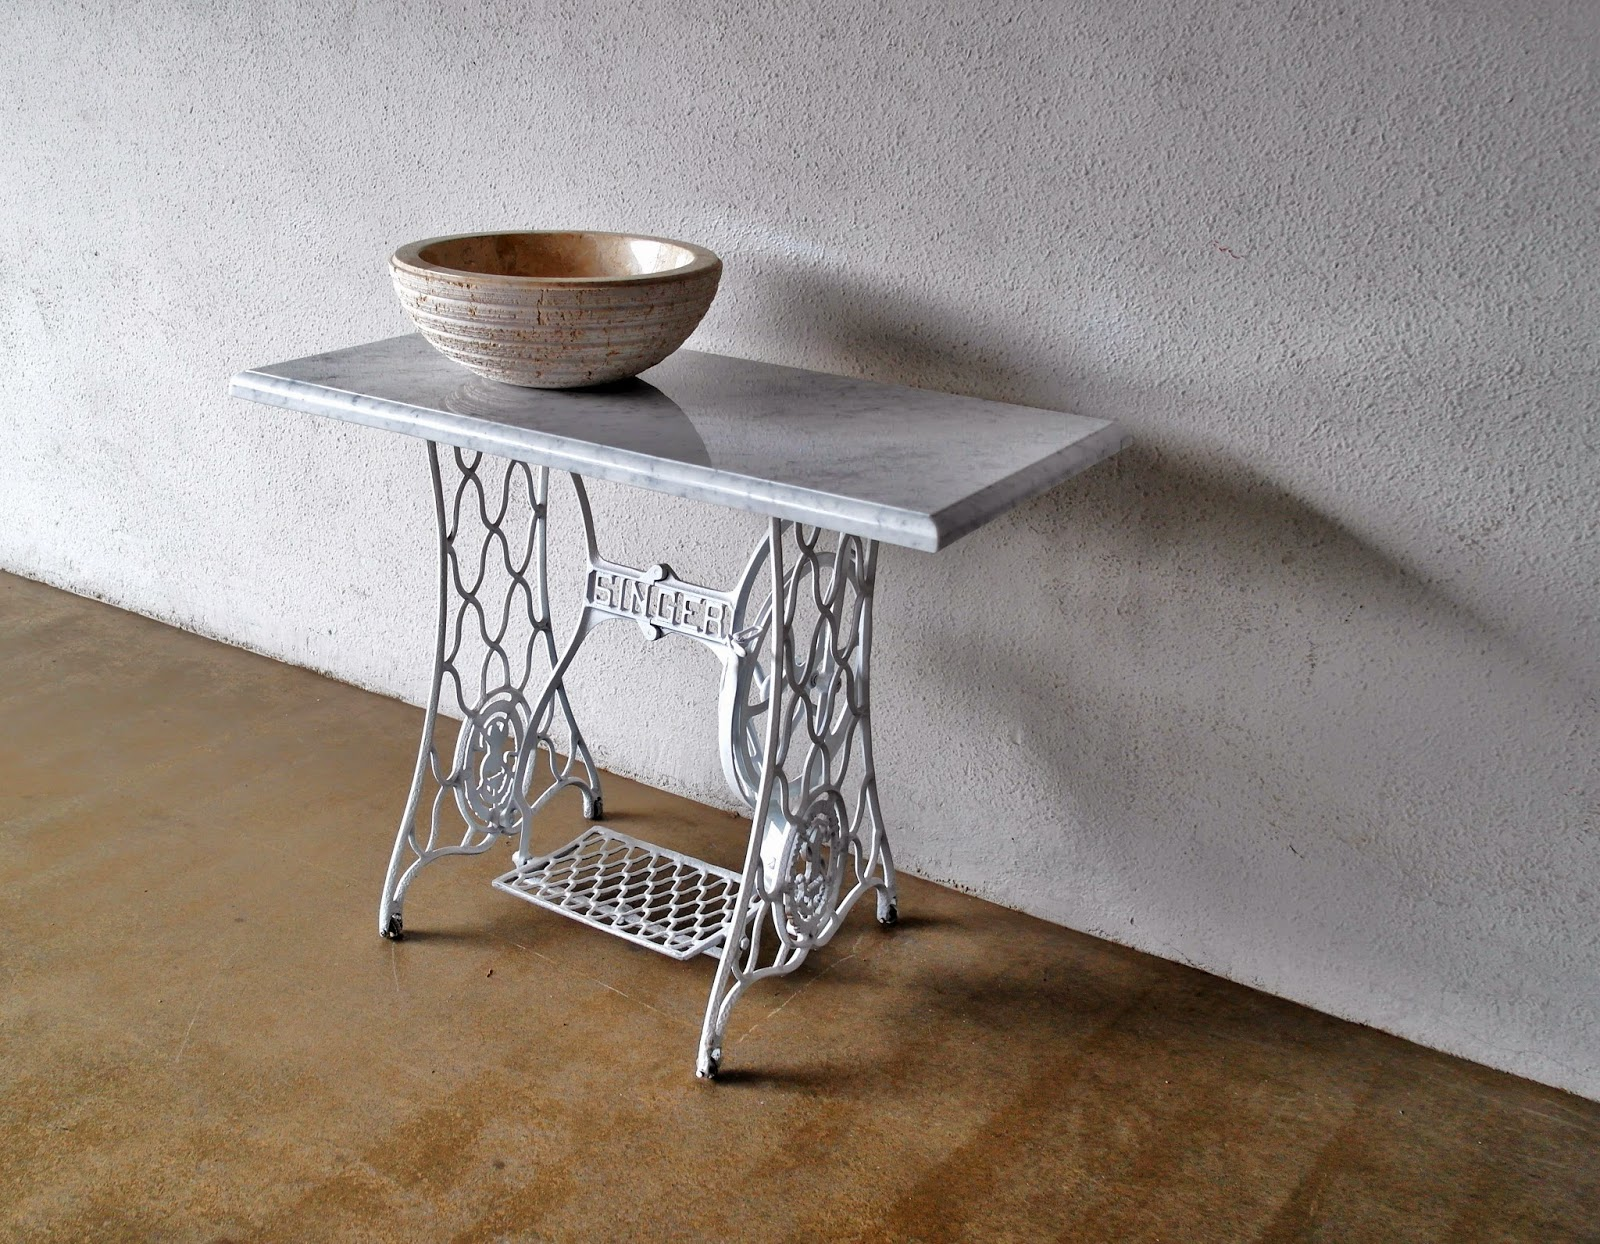 INDUSTRIAL AND METAL FURNITURE AT SECOND CHARM